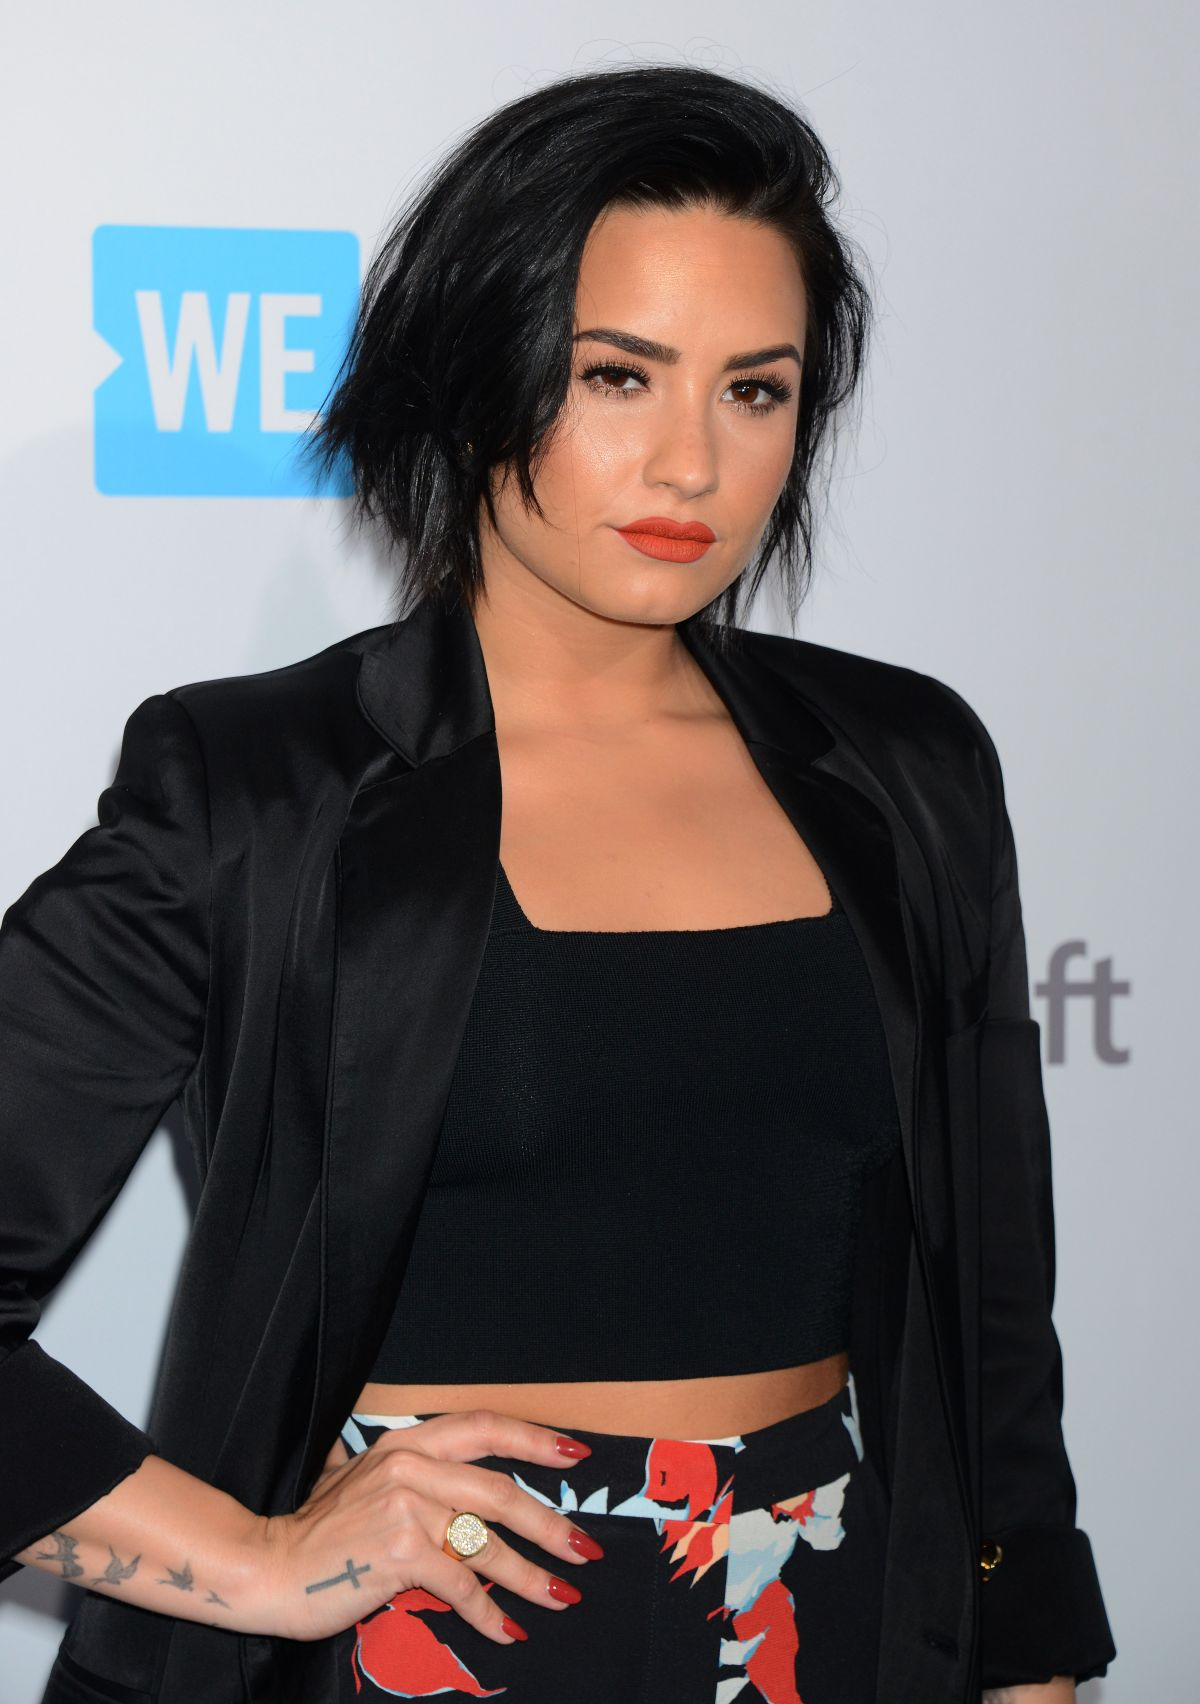 demi lovato - photo #27